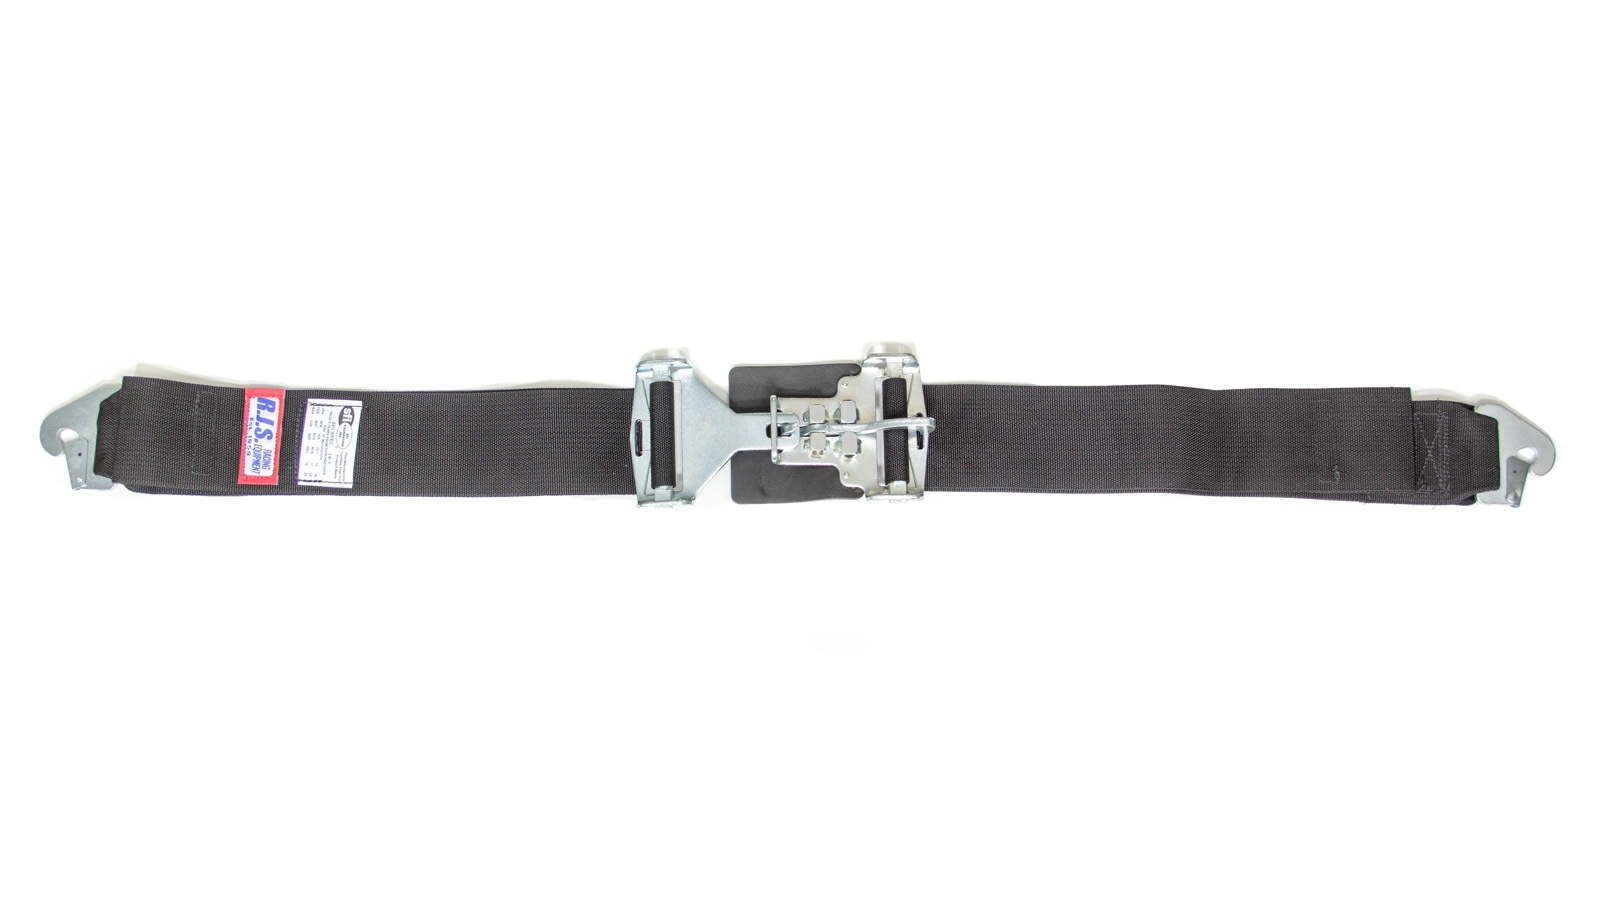 RJS Safety 15002001 Lap Harness, Latch and Link, SFI 16.1, 64 in Length, 3 in Width, Pull Down Adjust, Snap Ends, Black, Each